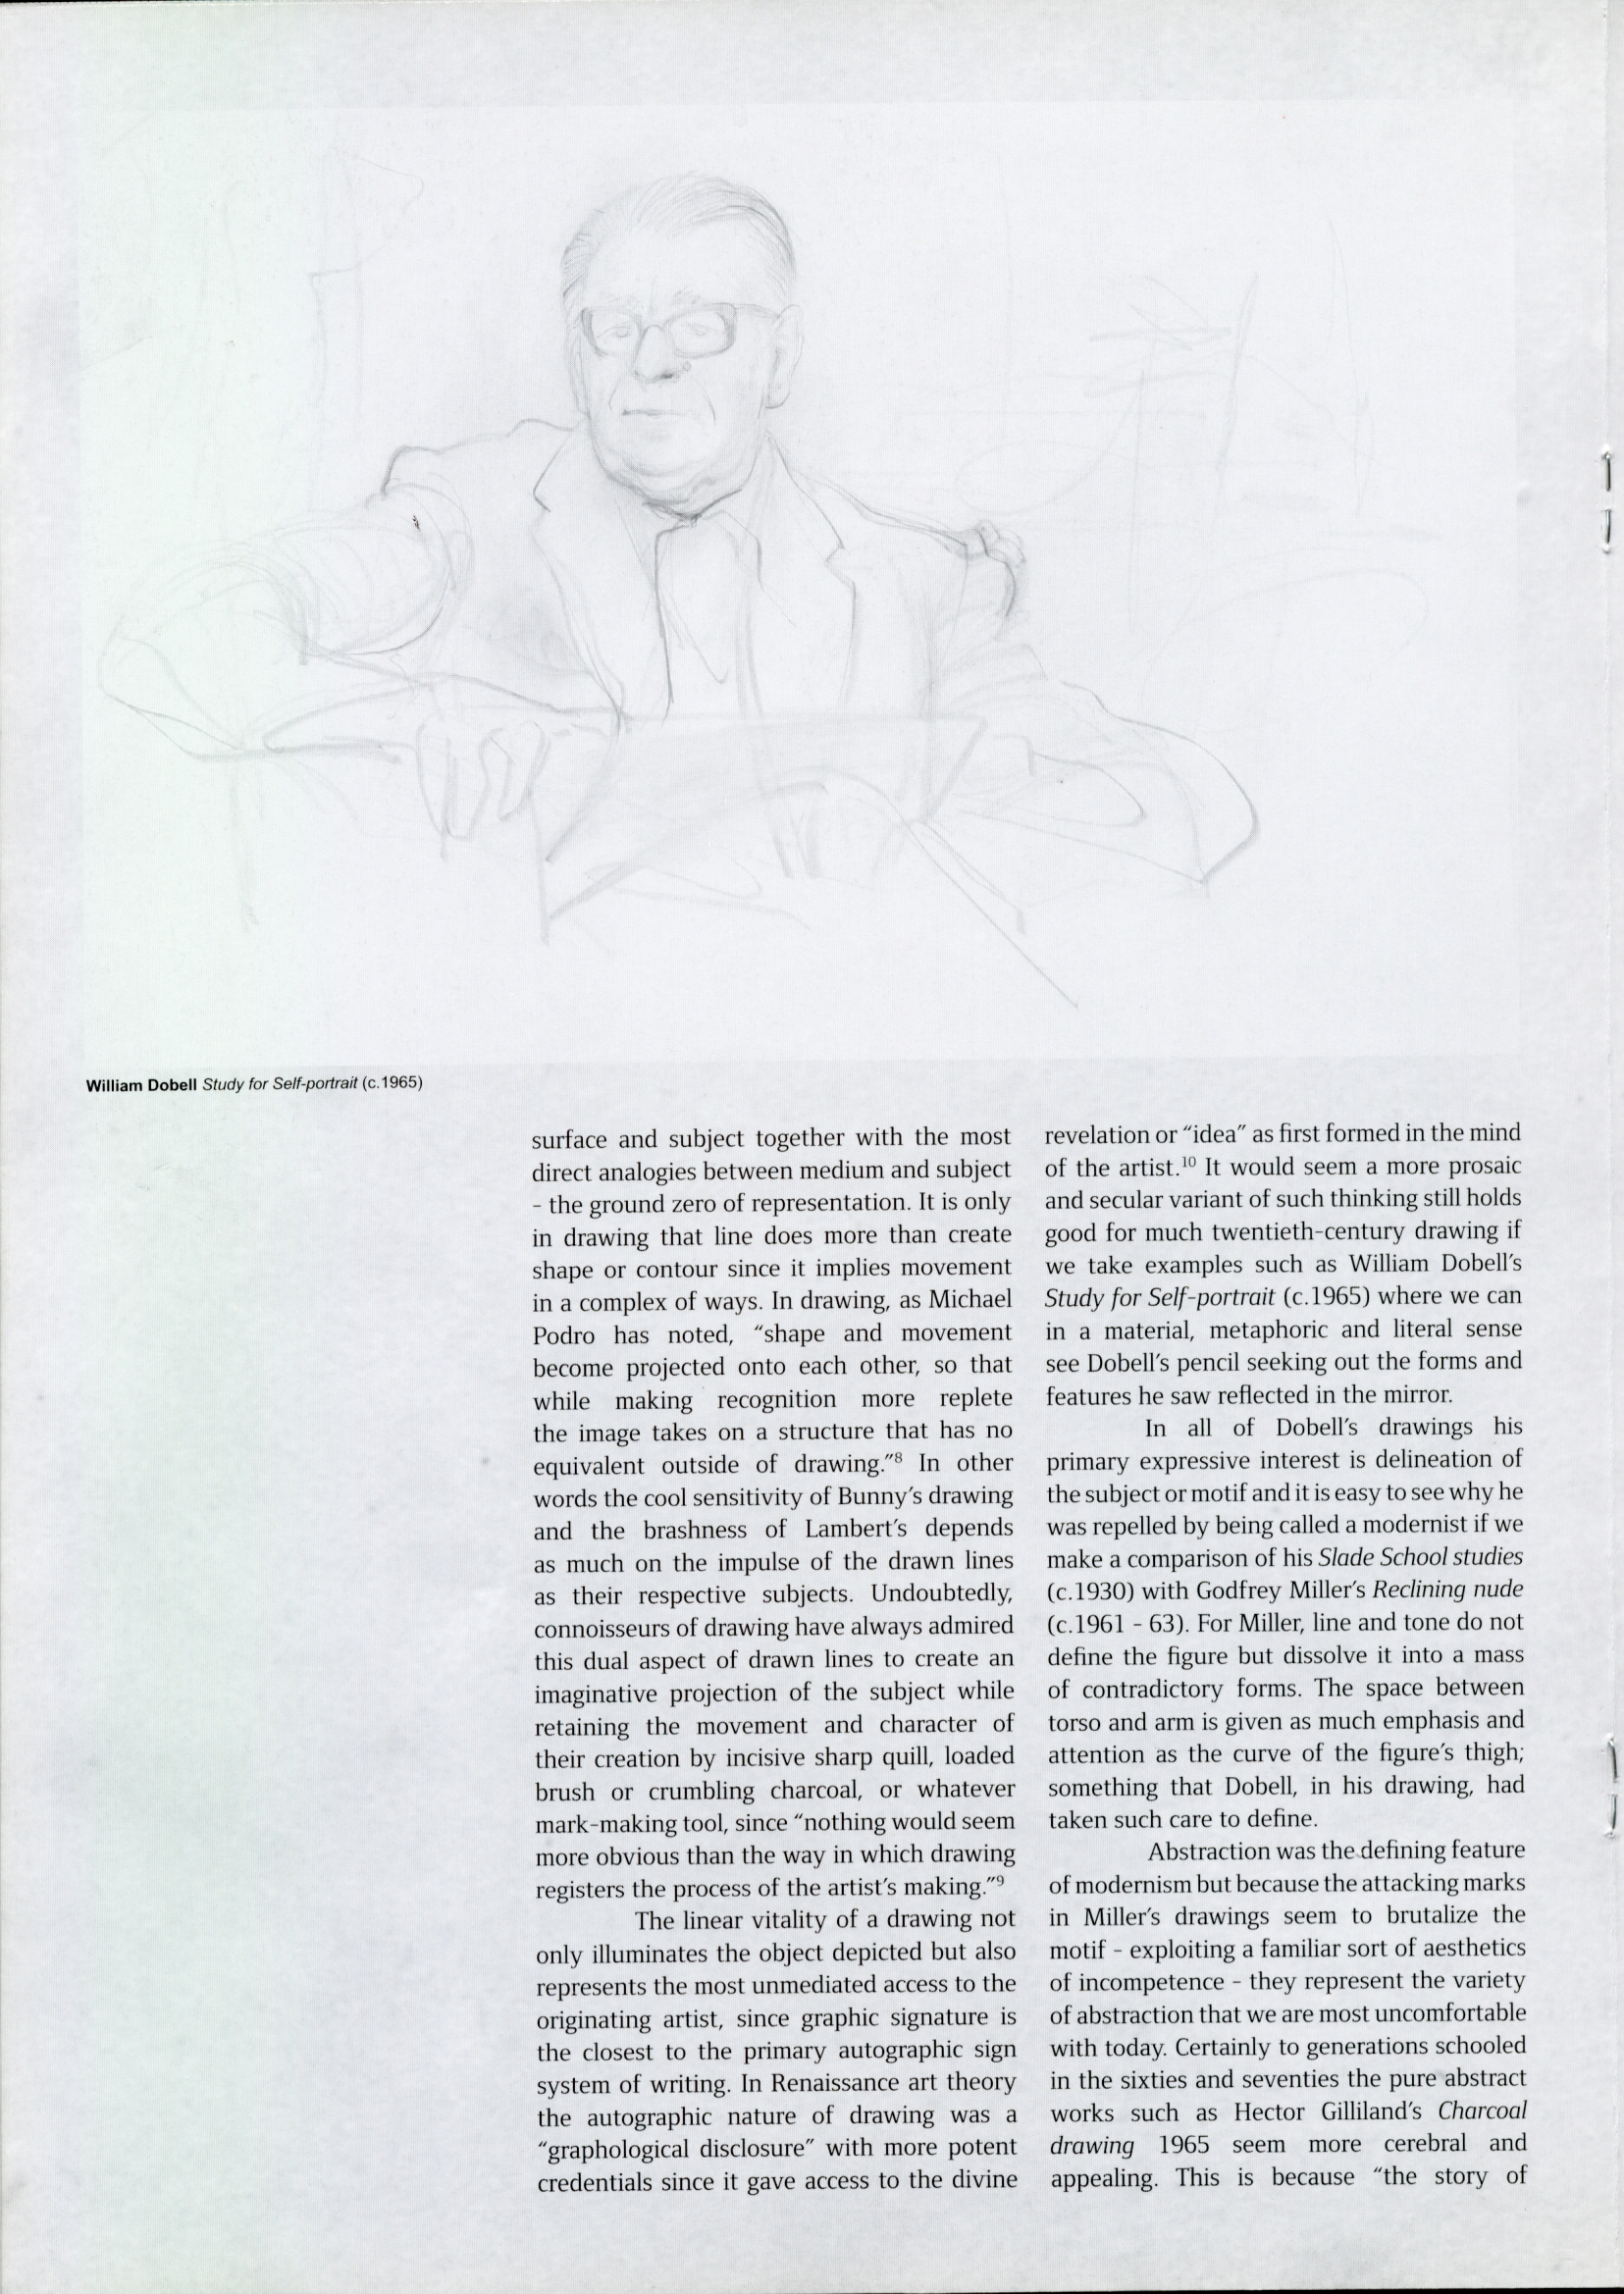 DrawingCentre-essay (1)_Page_4.jpg